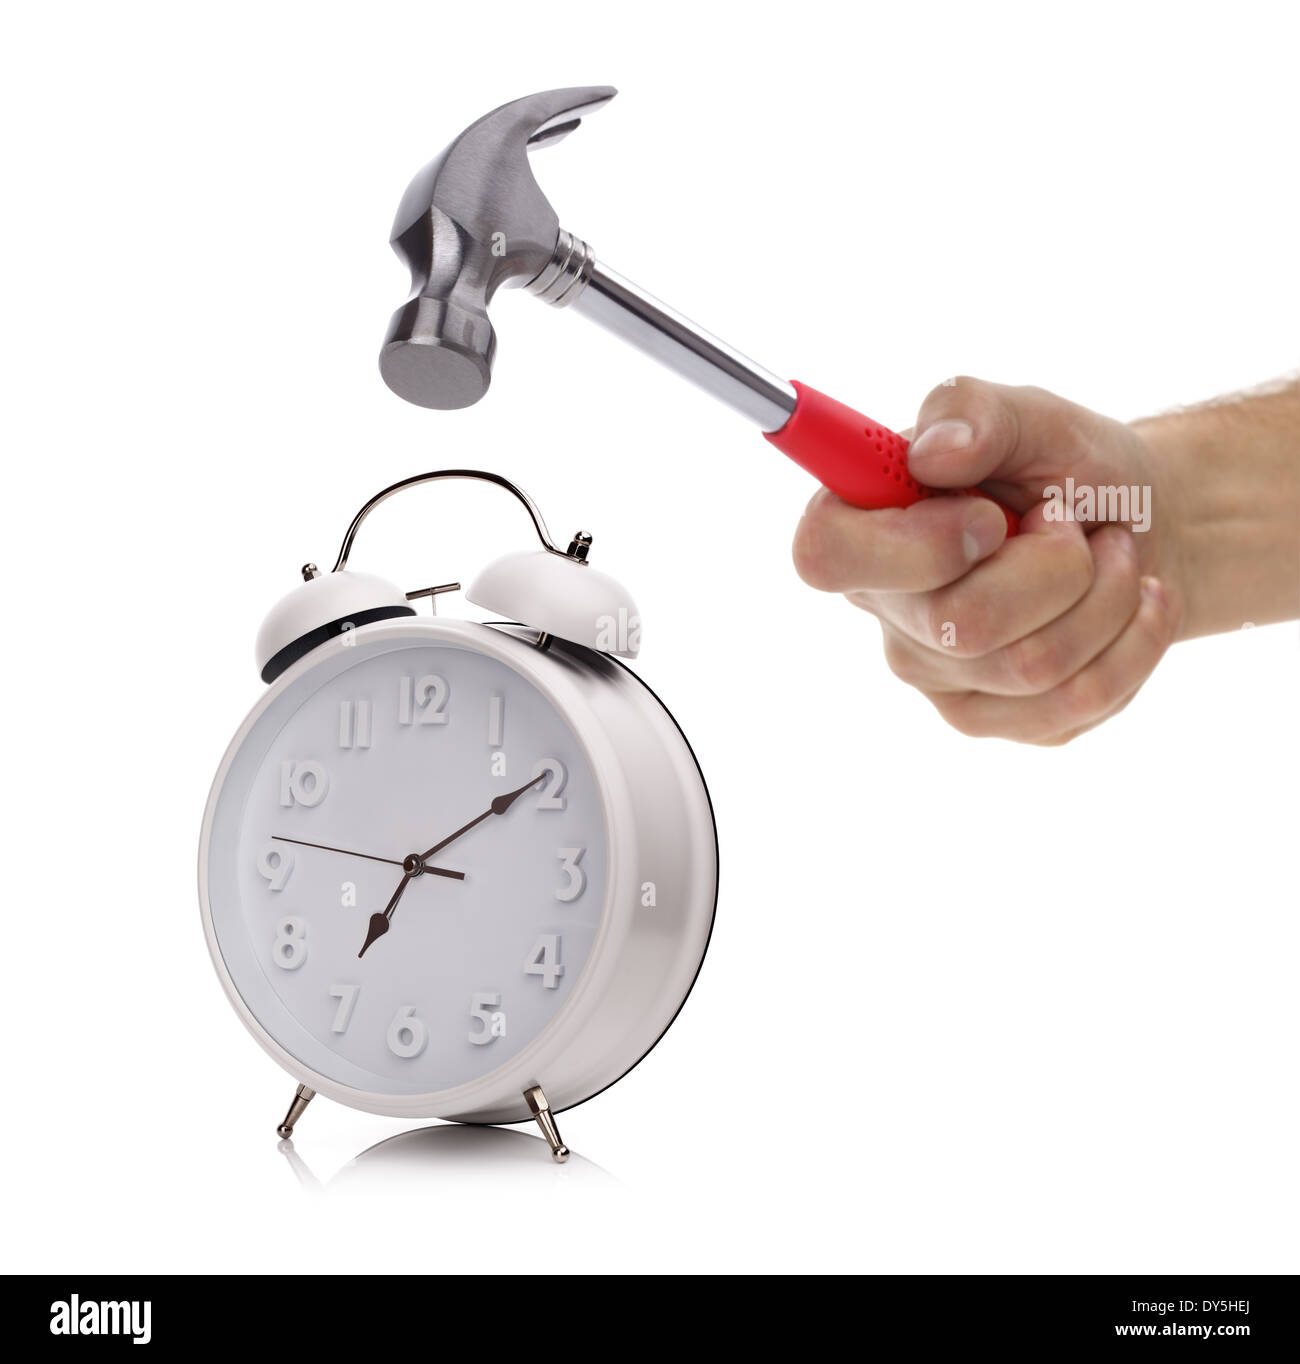 Alarm clock and hammer - Stock Image